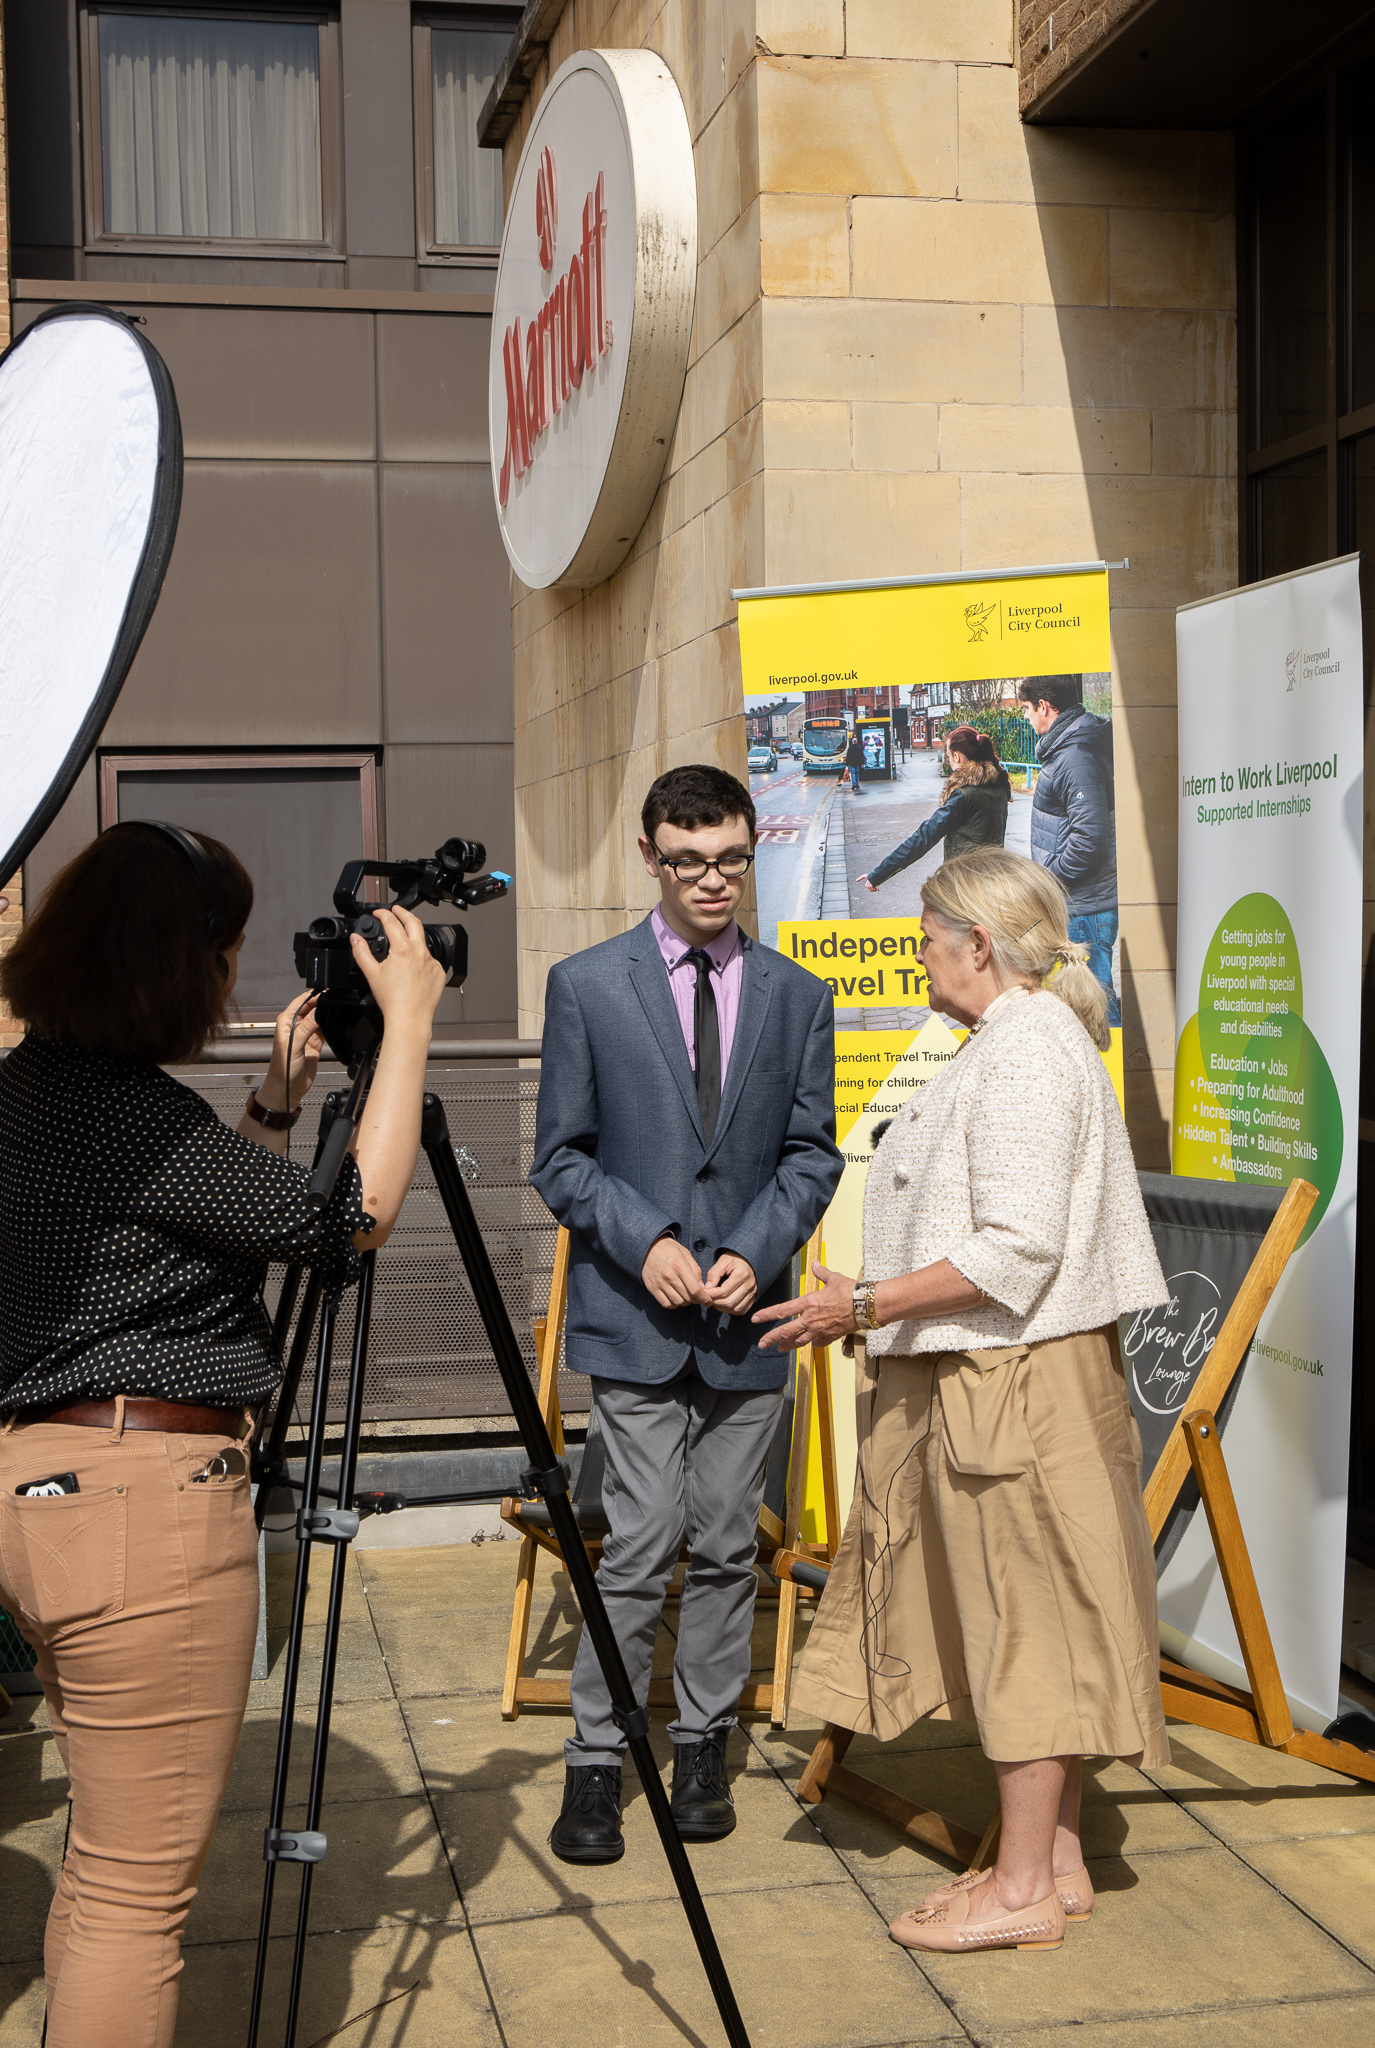 Harry interviewing Barbara Murray, Cabinet Member for Education, Employment and Skills.